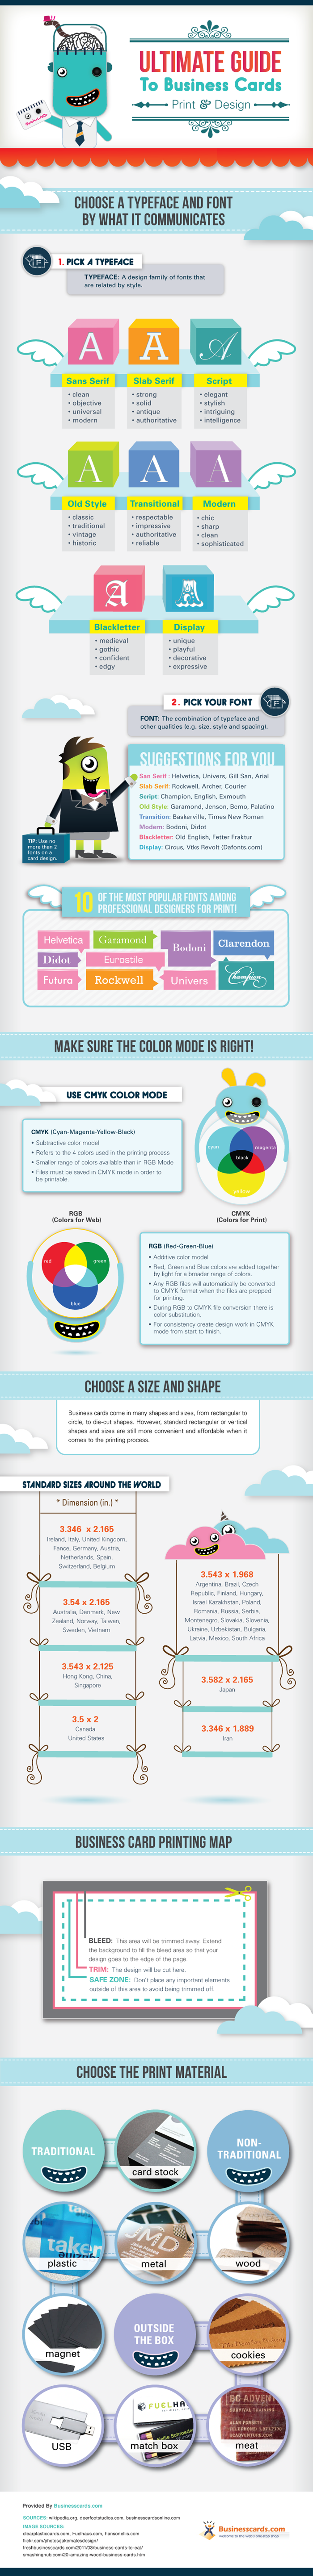 Ultimate Guide to Business Cards infographic